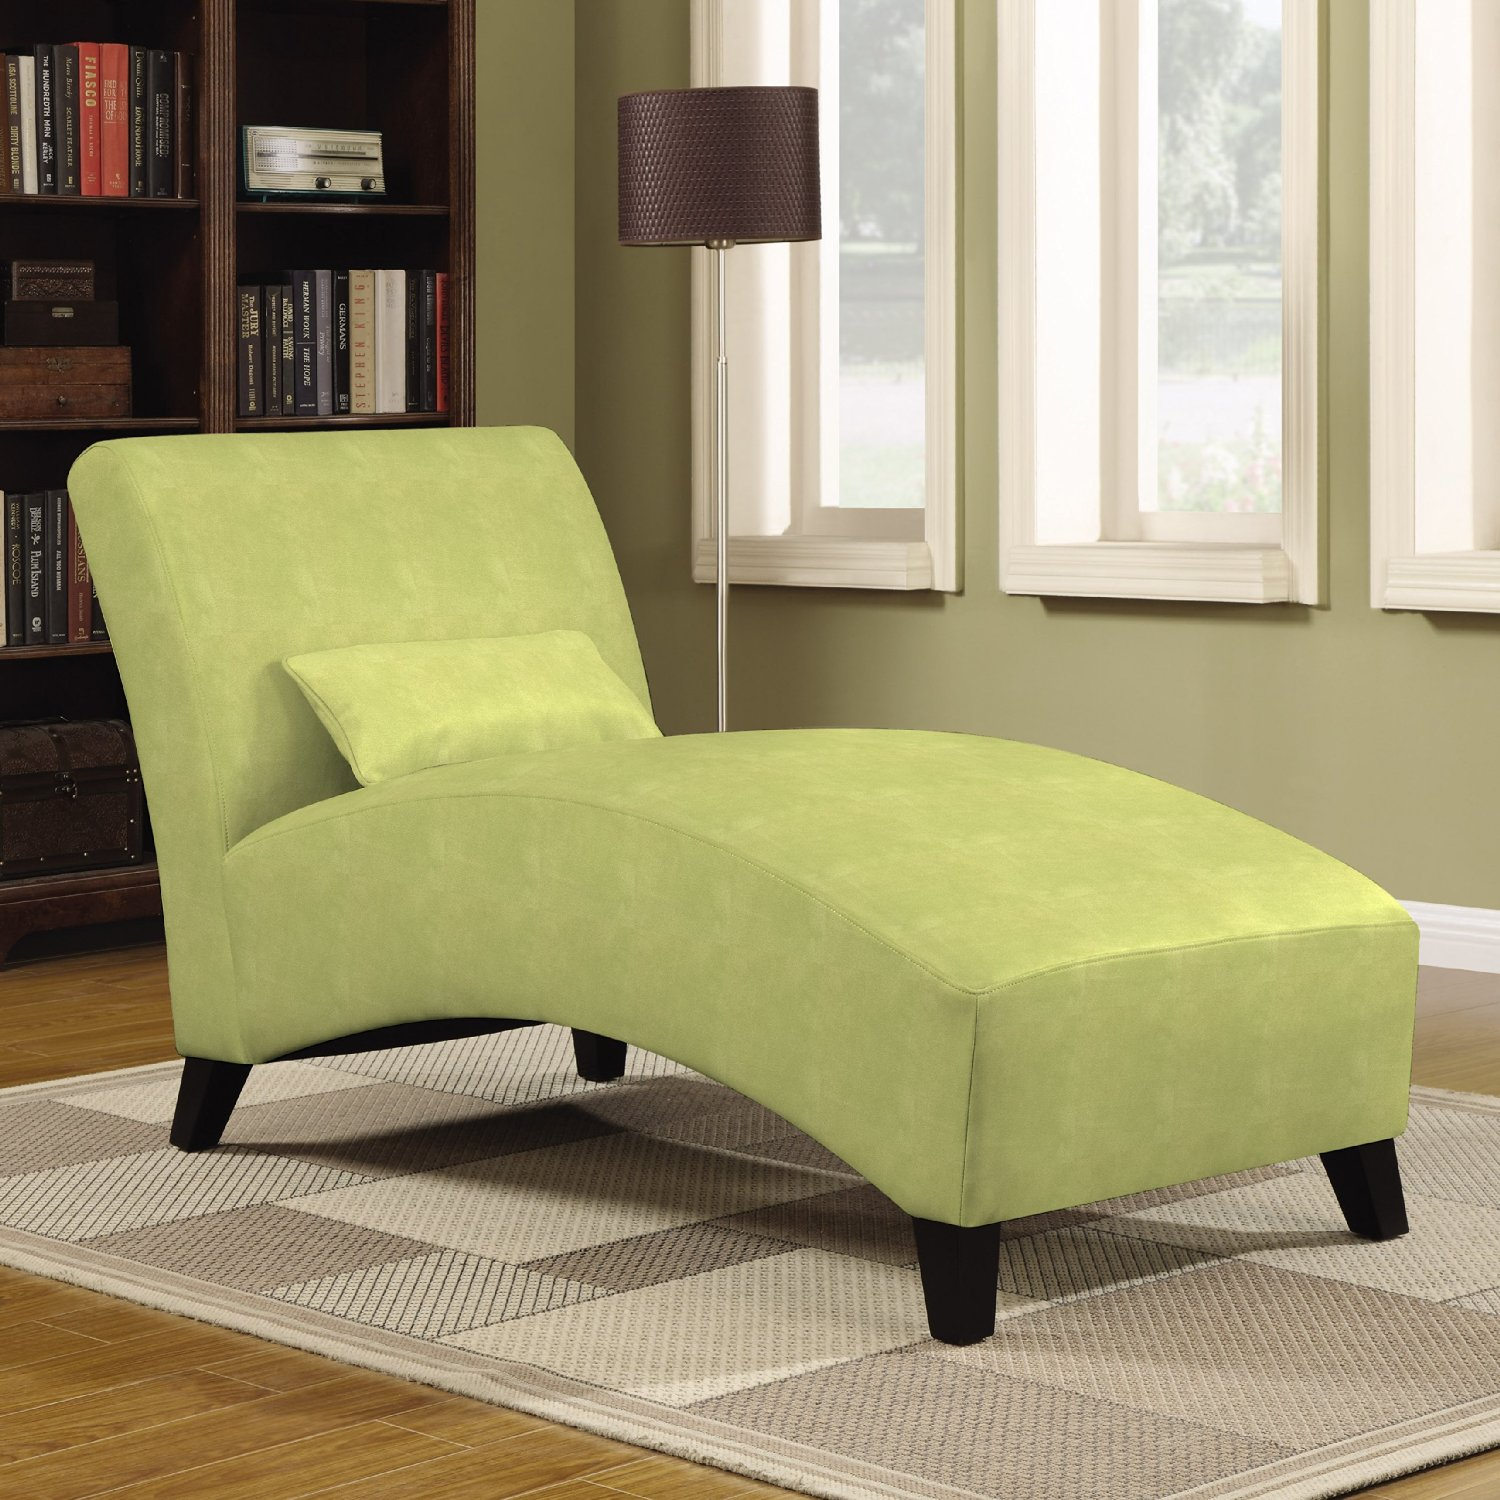 bedroom chaise lounge upholstered chaise lounges for bedrooms 10310